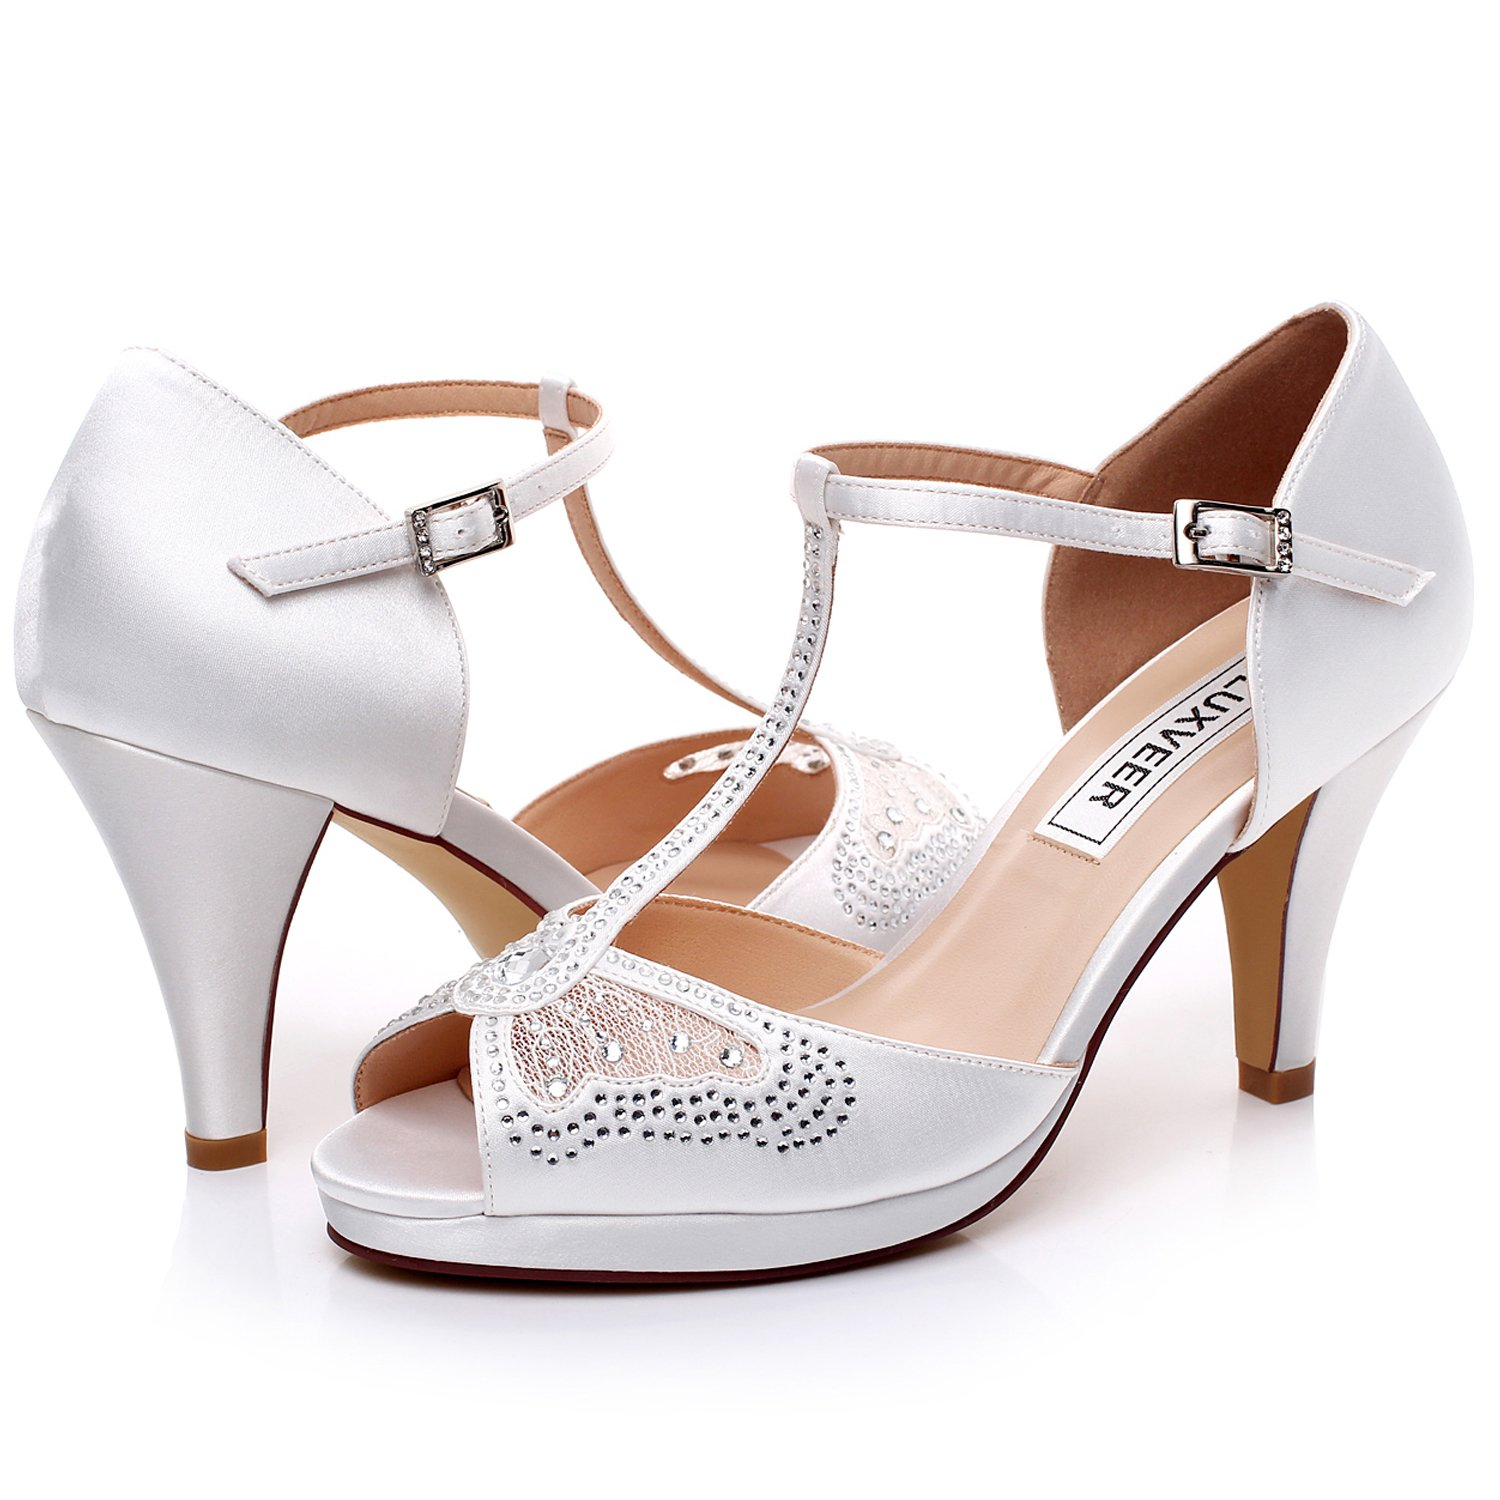 LUXVEER Wedding Sandals Heels for Women ,Silver Rhinestone and Lace Butterfly - Heels 3.5 inch-HK-0192C-Ivory-EU40 Wedding Shoes by LUXVEER (Image #6)